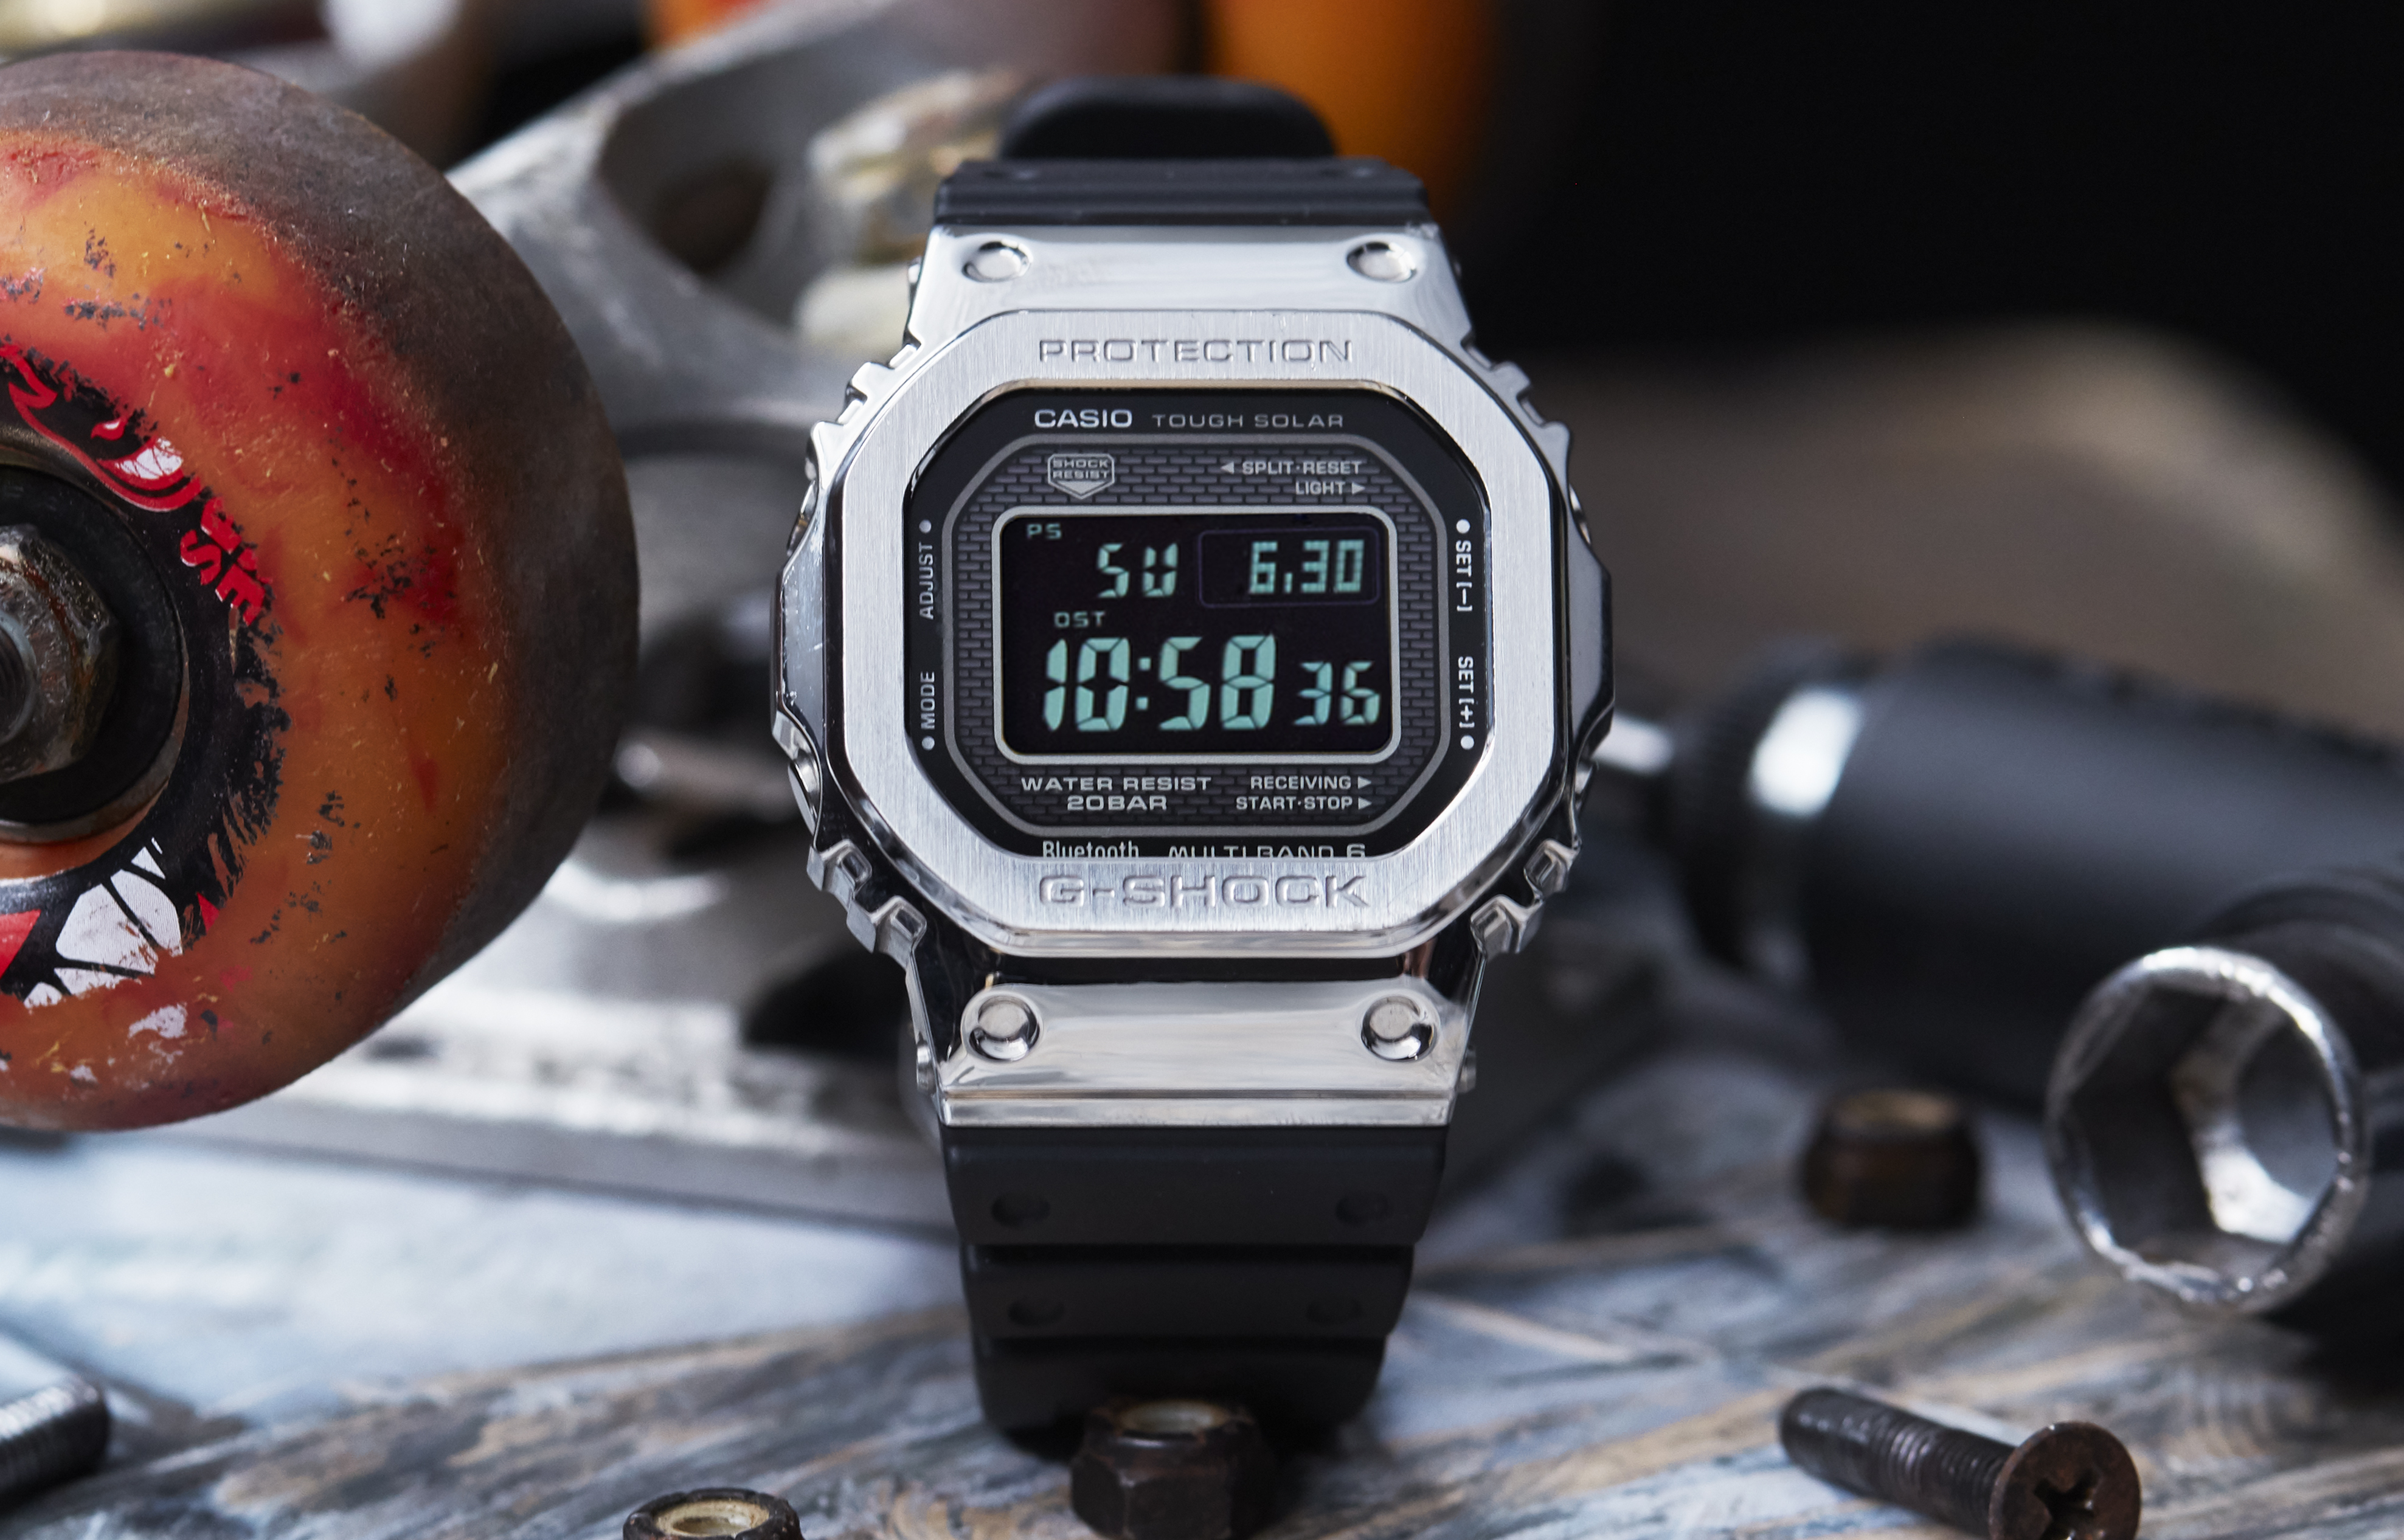 5619d3c336a27 Google News - G-Shock - Latest